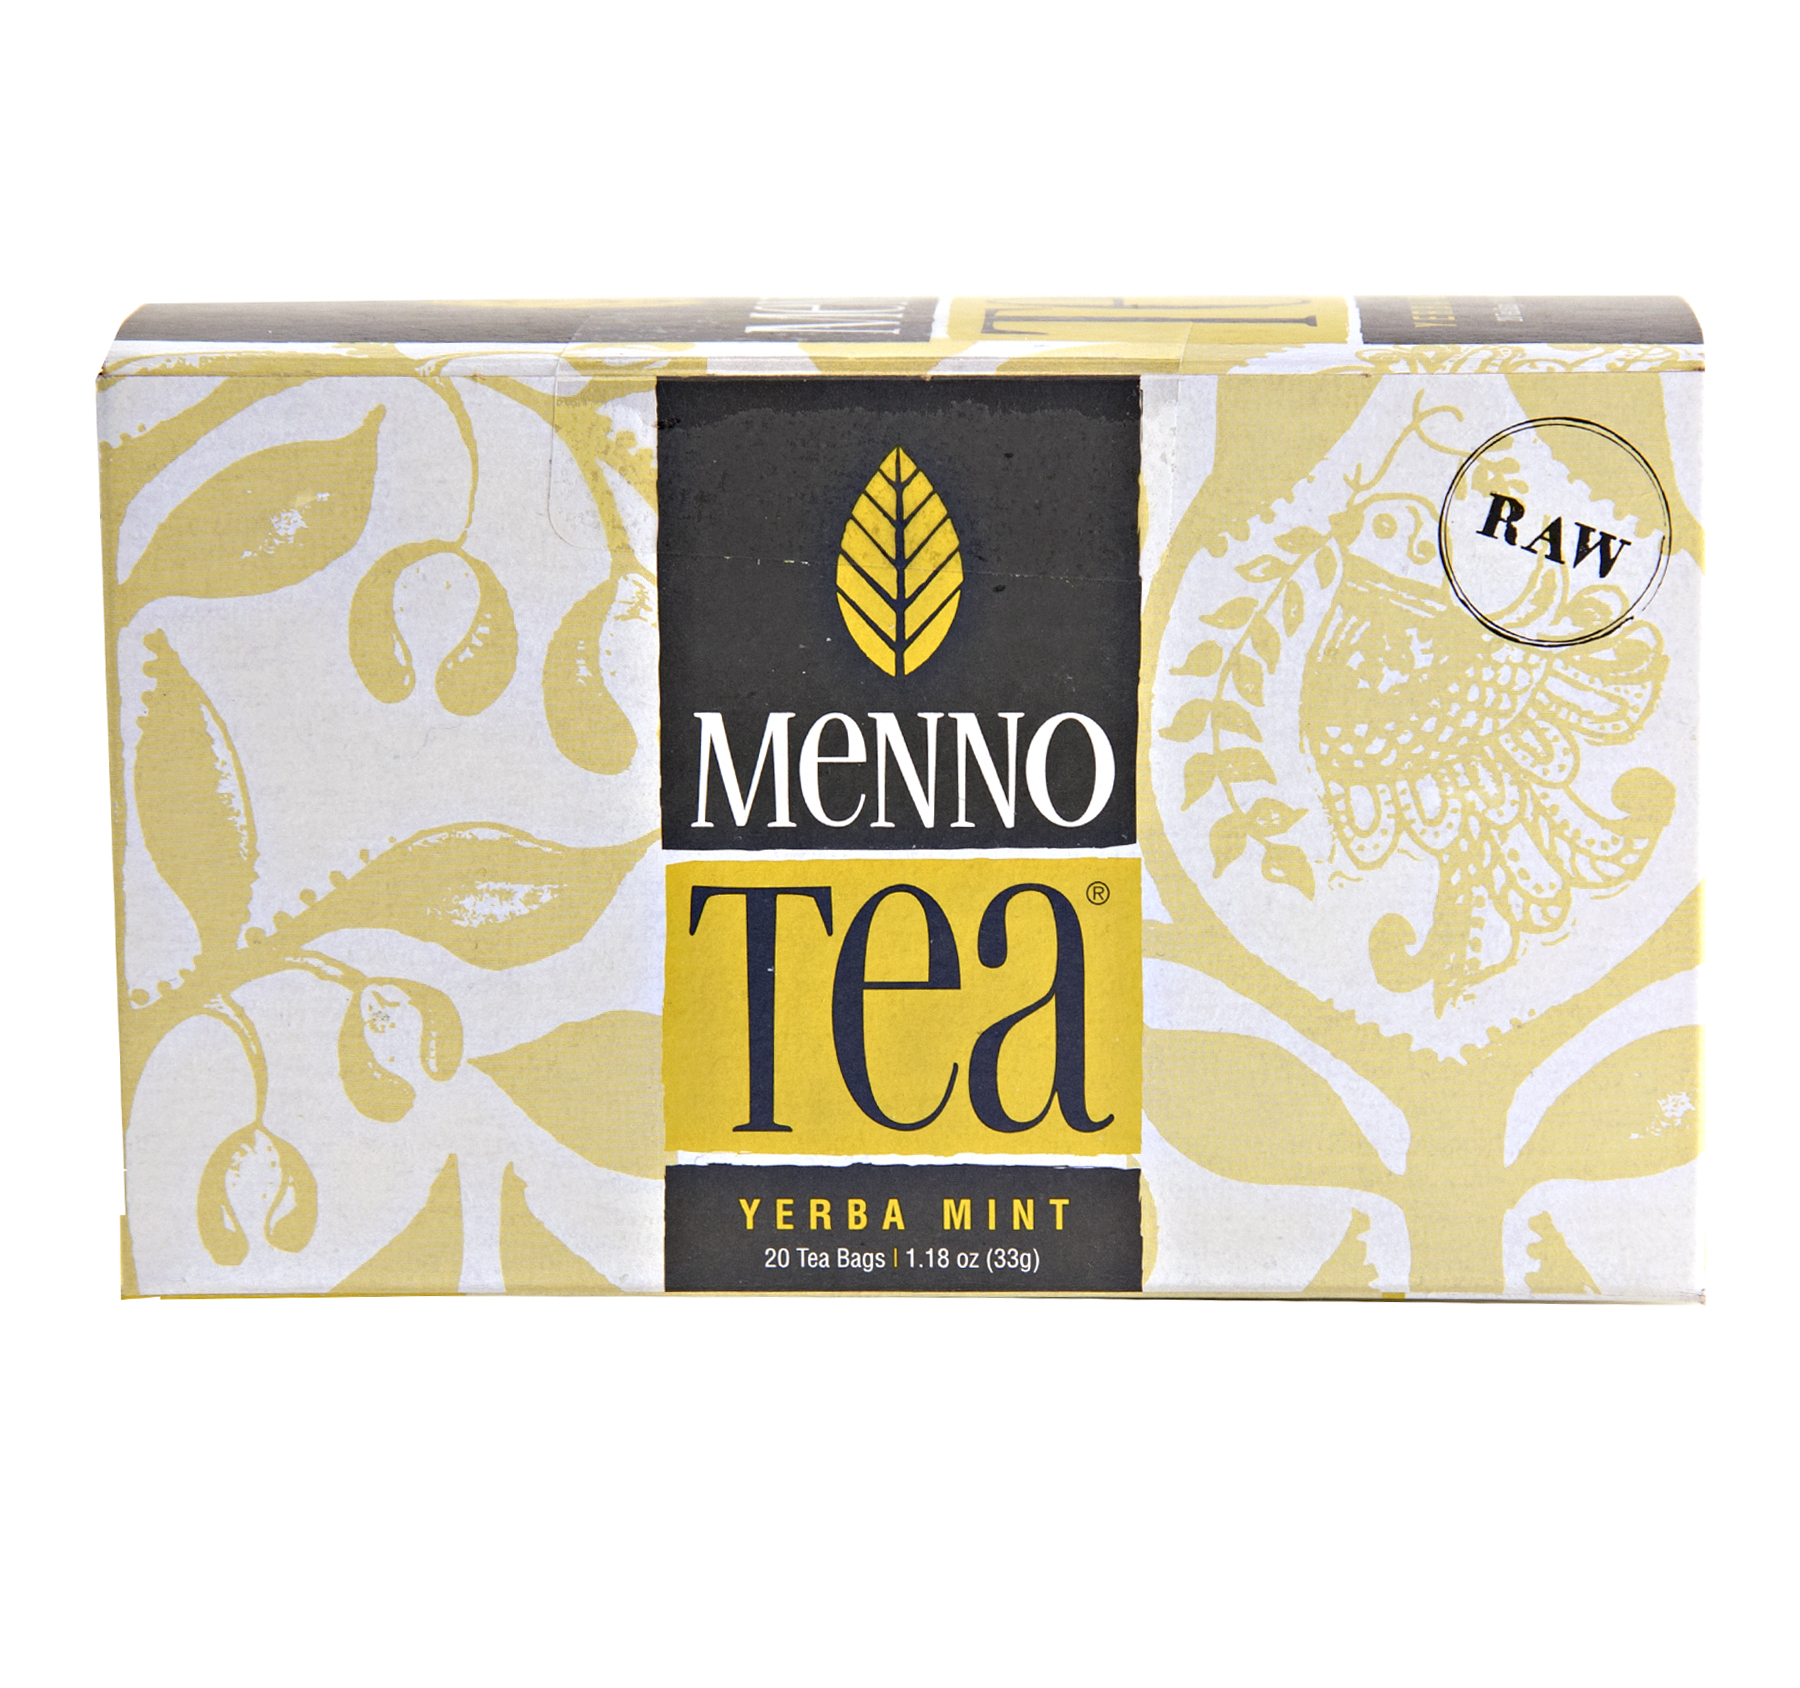 menno-tea-raw-yerba-mint-white.jpg